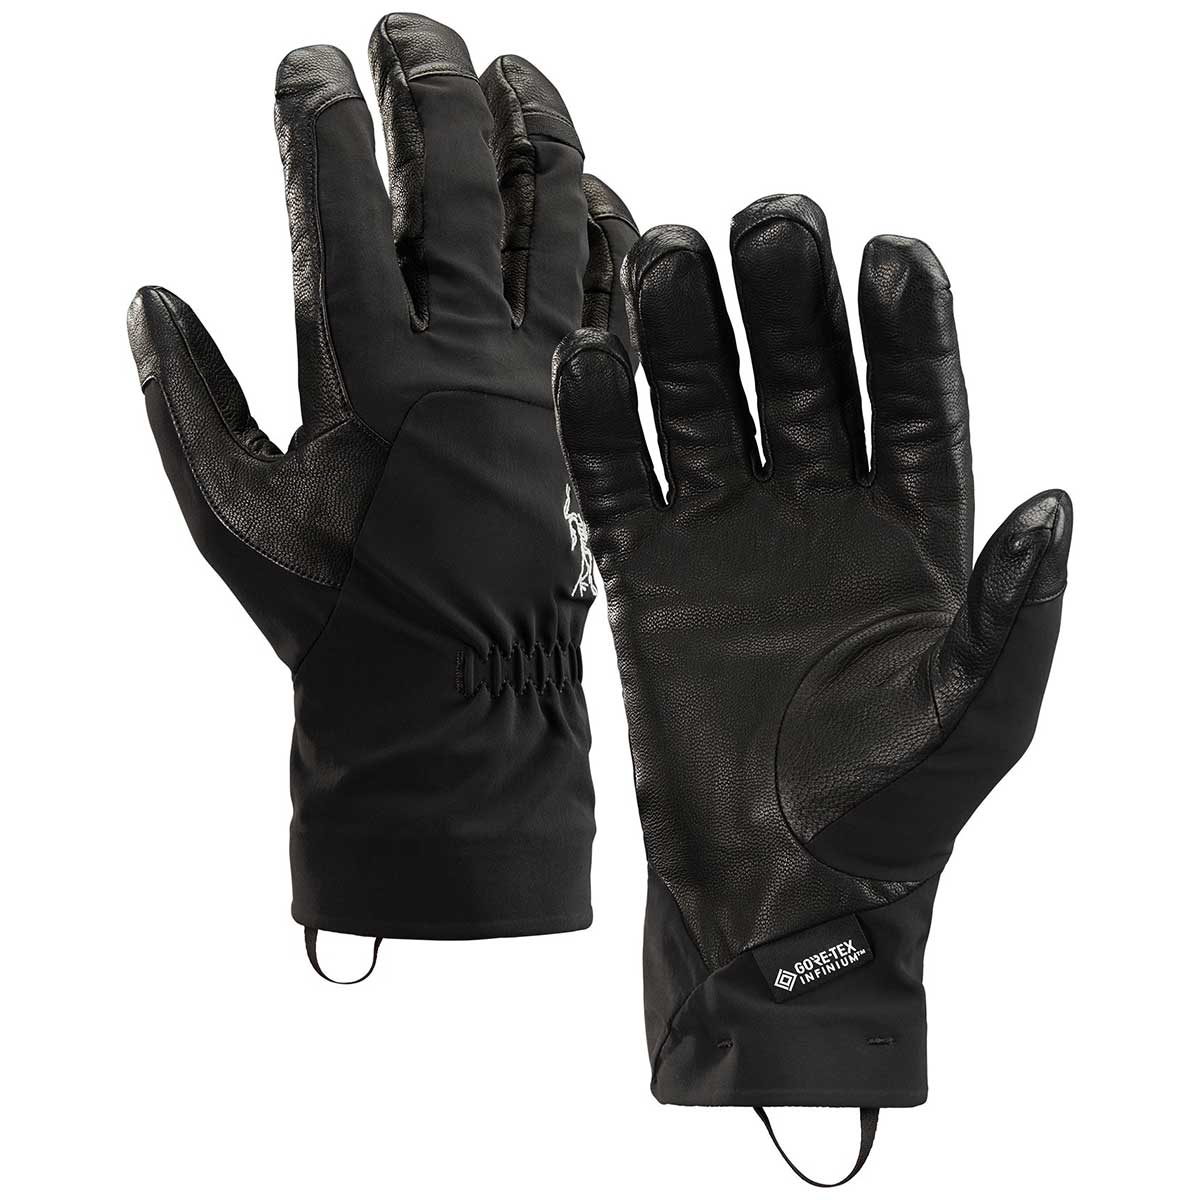 Arcteryx Ventra AR Glove in Black front view